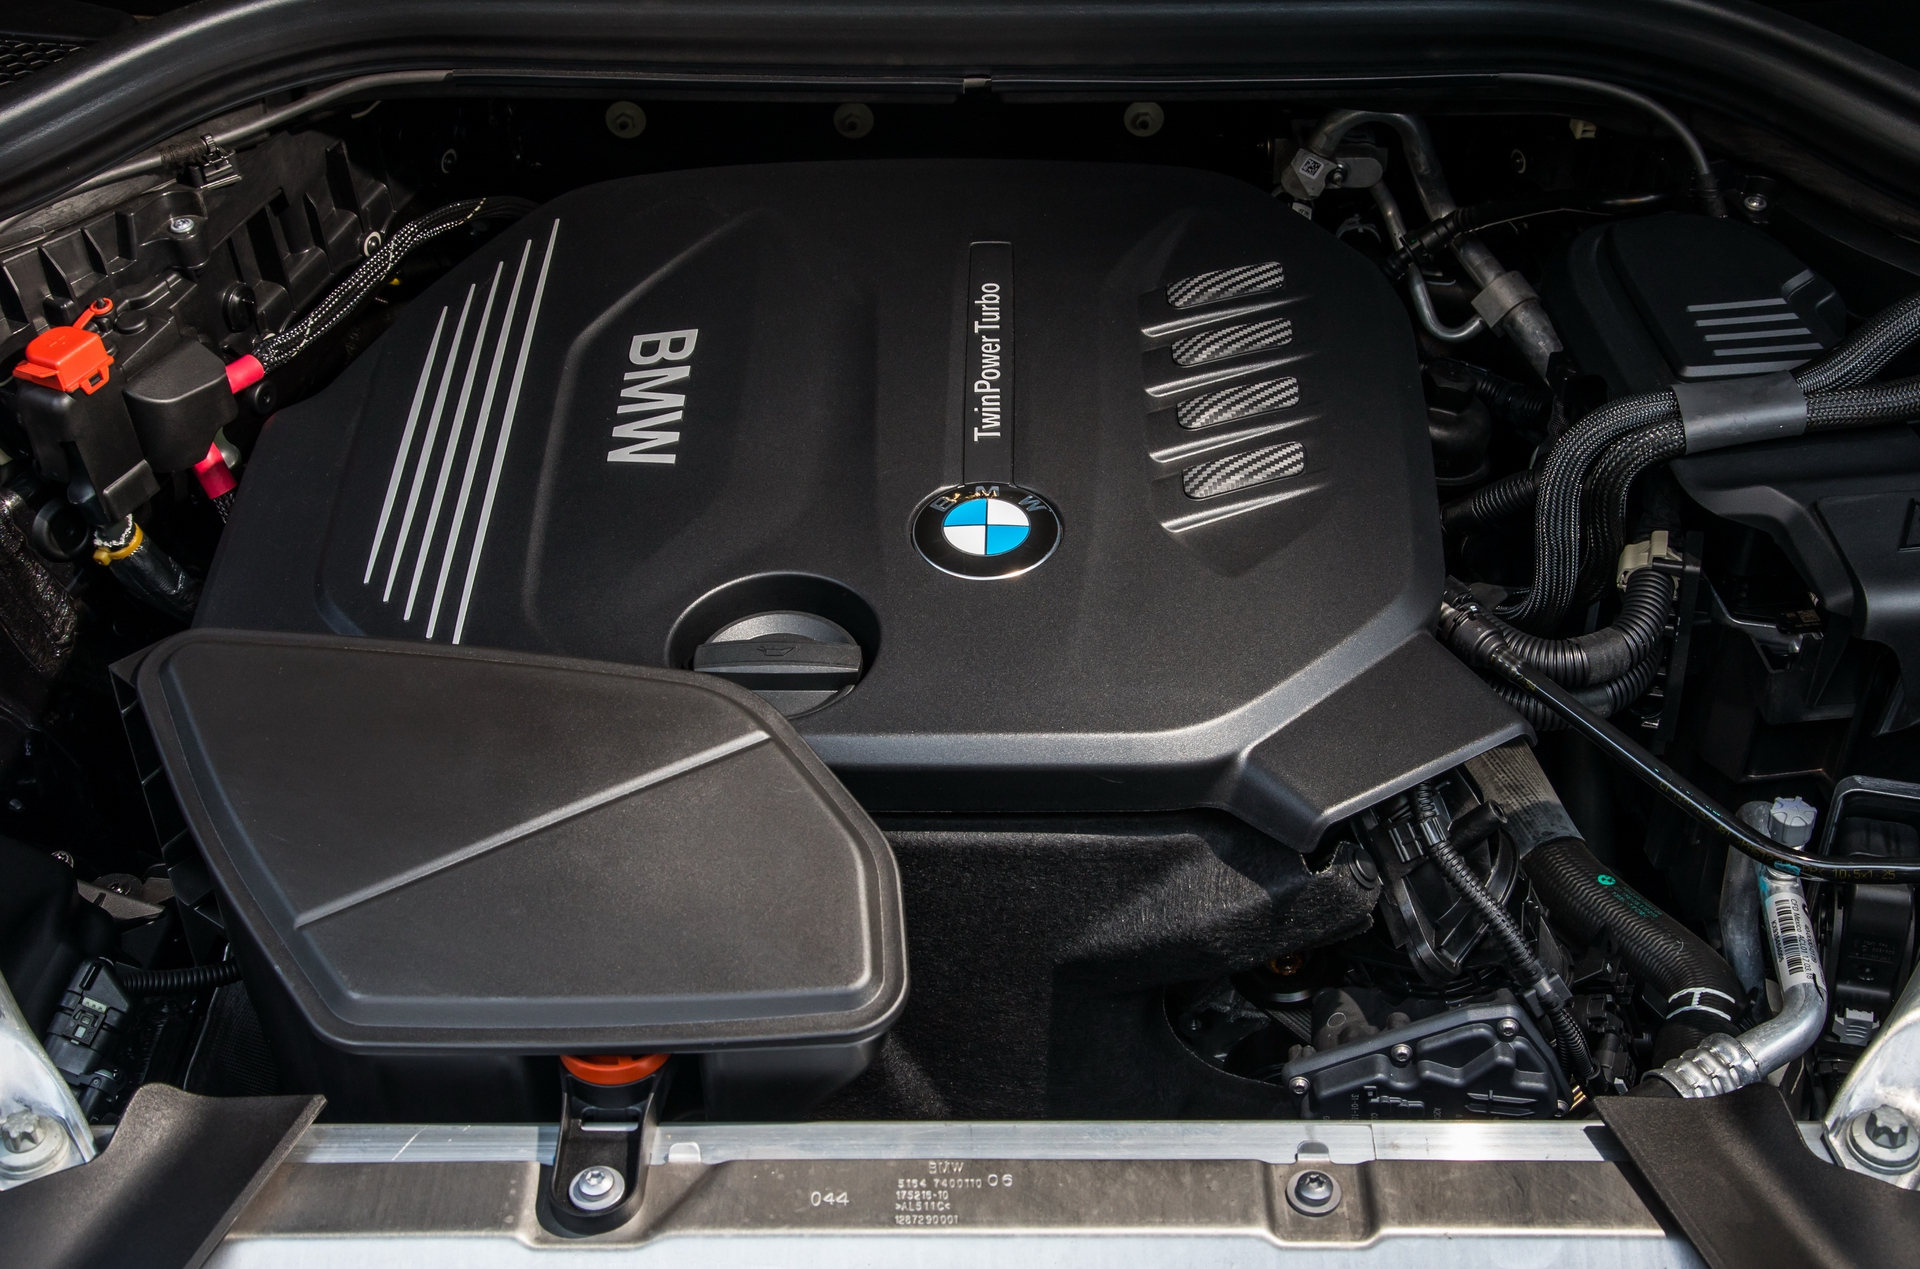 BMW_X4_greek_presskit_0125